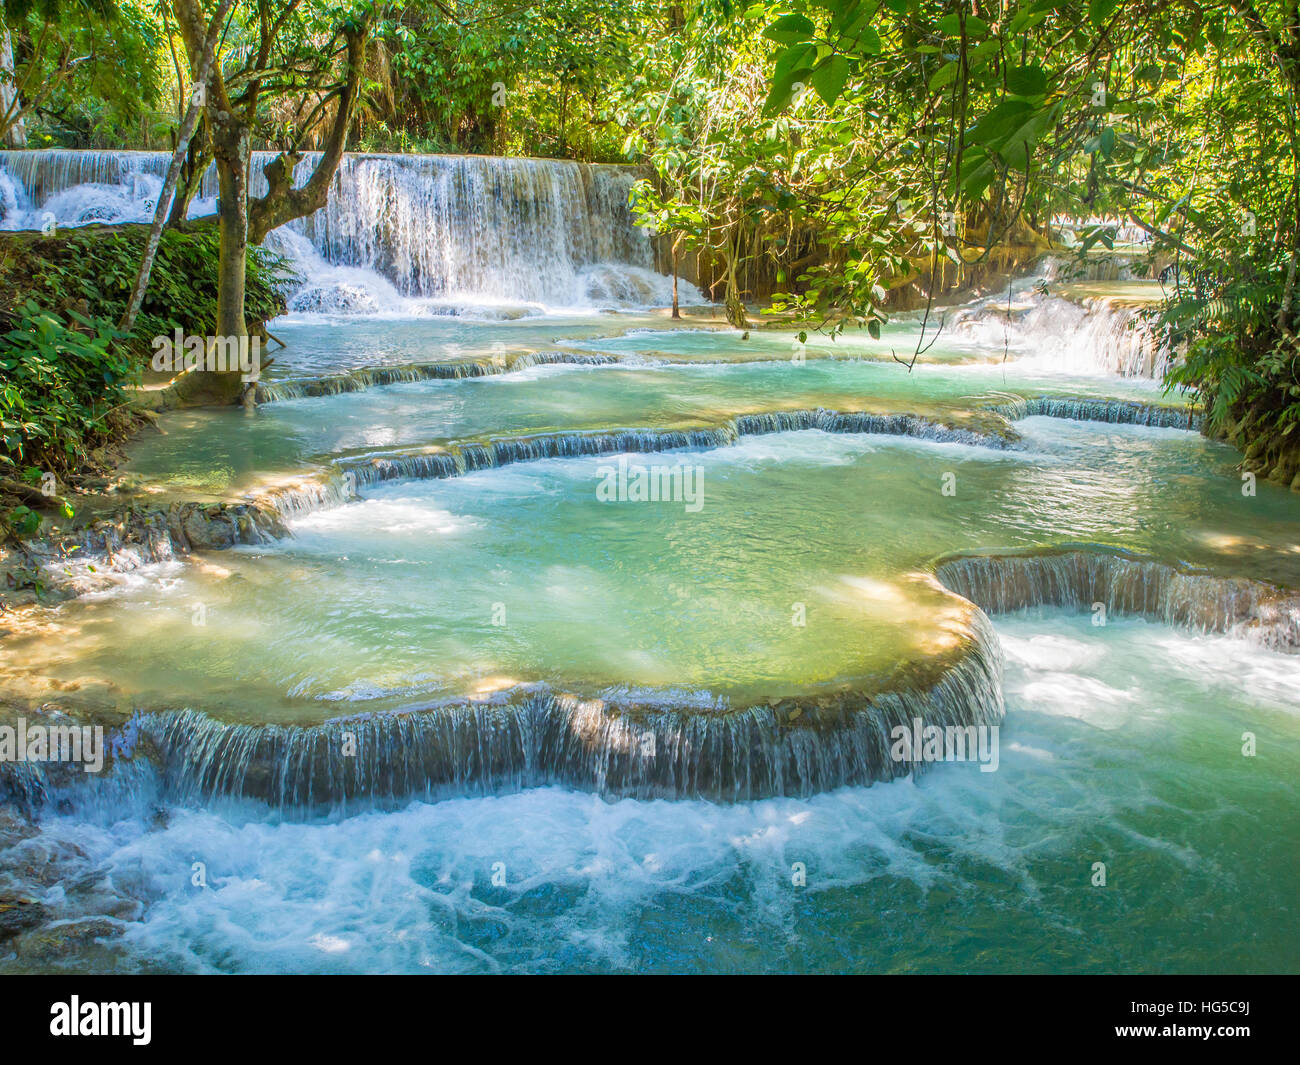 Keang Si waterfalls, near Luang Prabang, Laos, Indochina, Southeast Asia, Asia - Stock Image